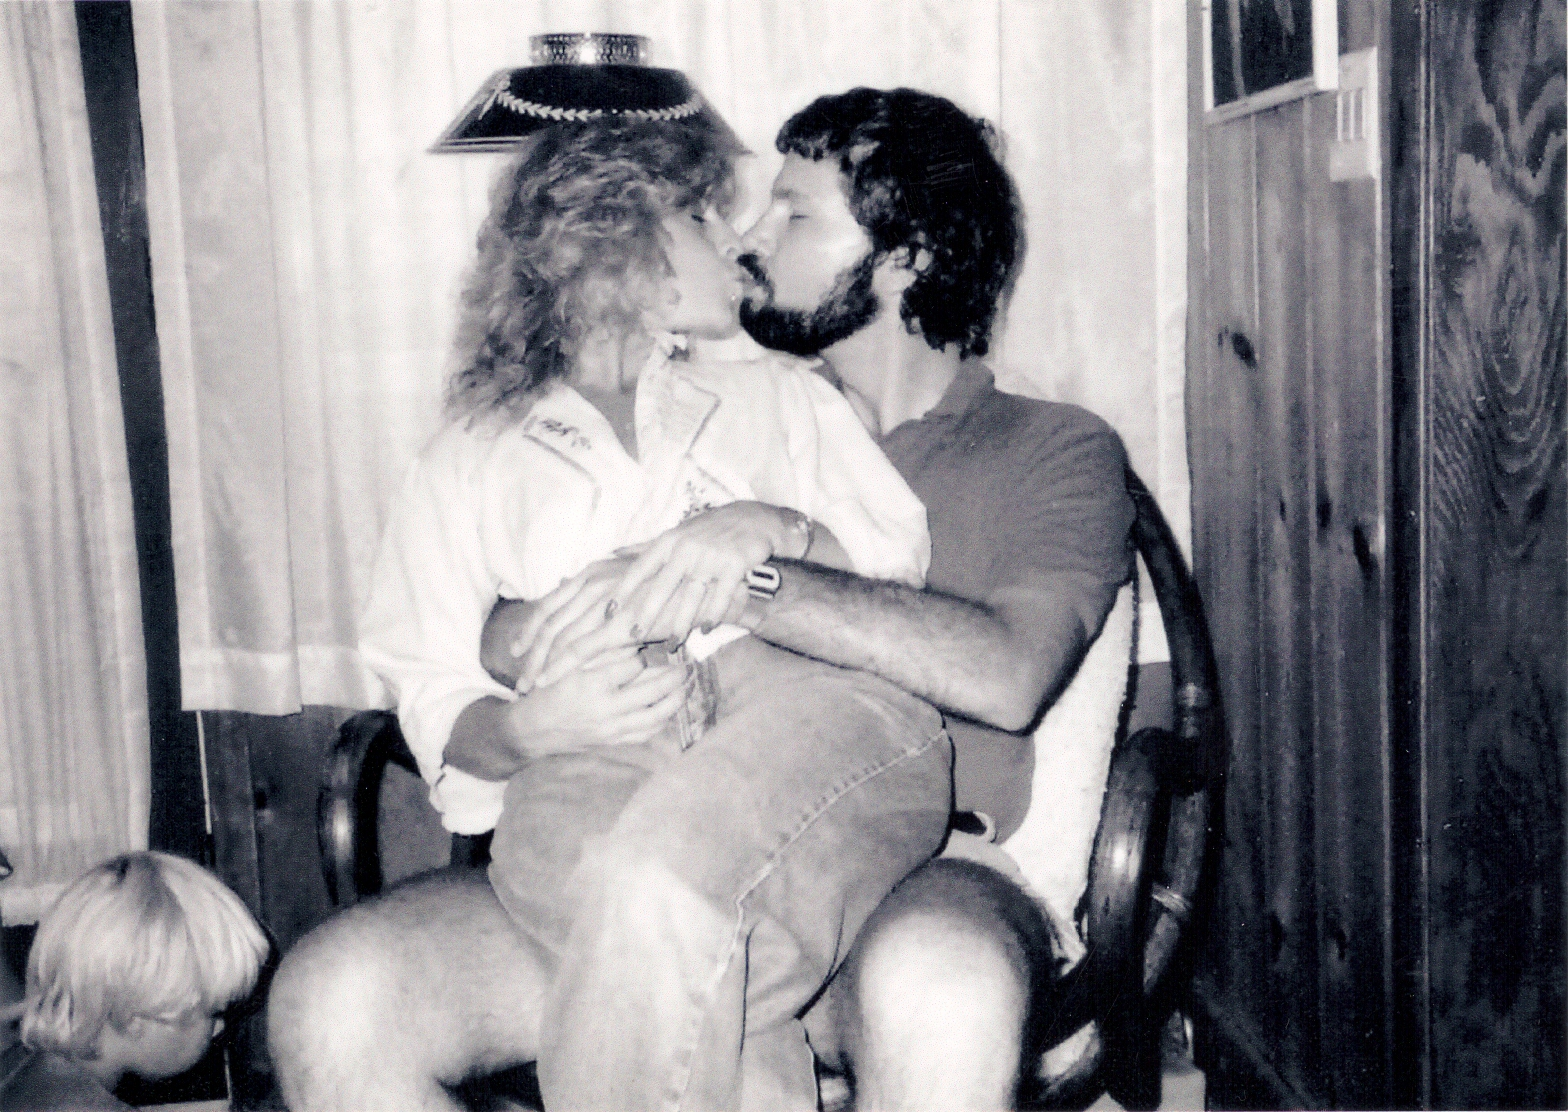 Tom and Tania - Early Days